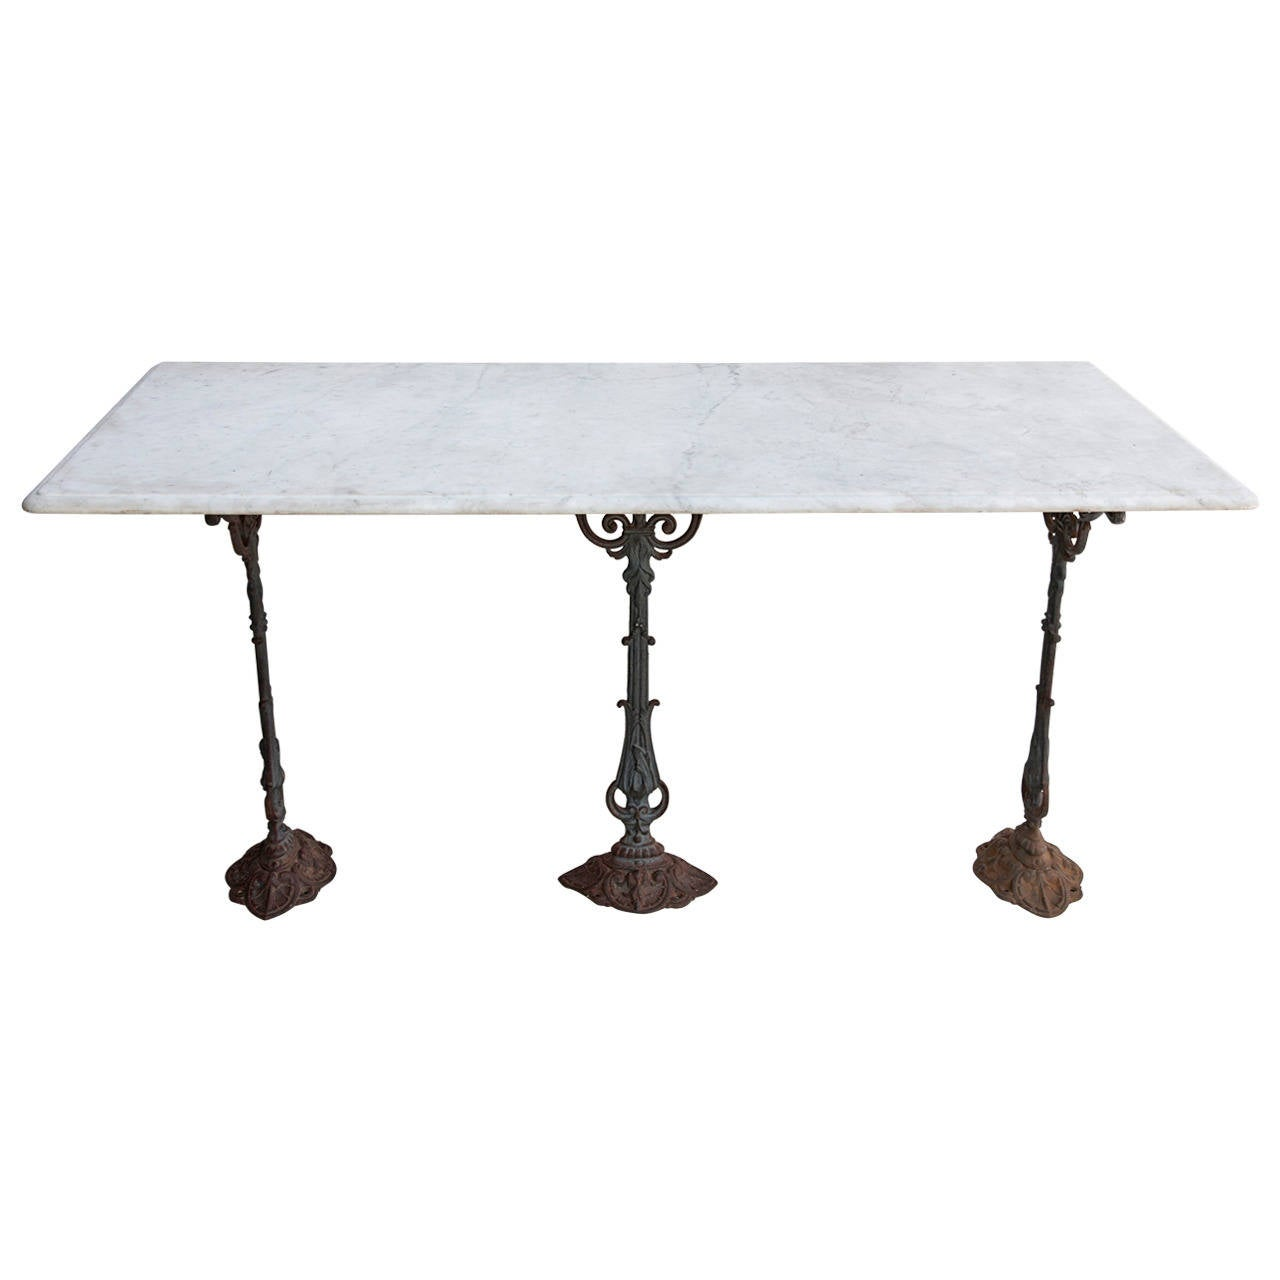 paris extending black glass dining table 4 black romeo chairs. carrara marble-top paris bistro table or console with three cast iron legs 1 extending black glass dining 4 romeo chairs